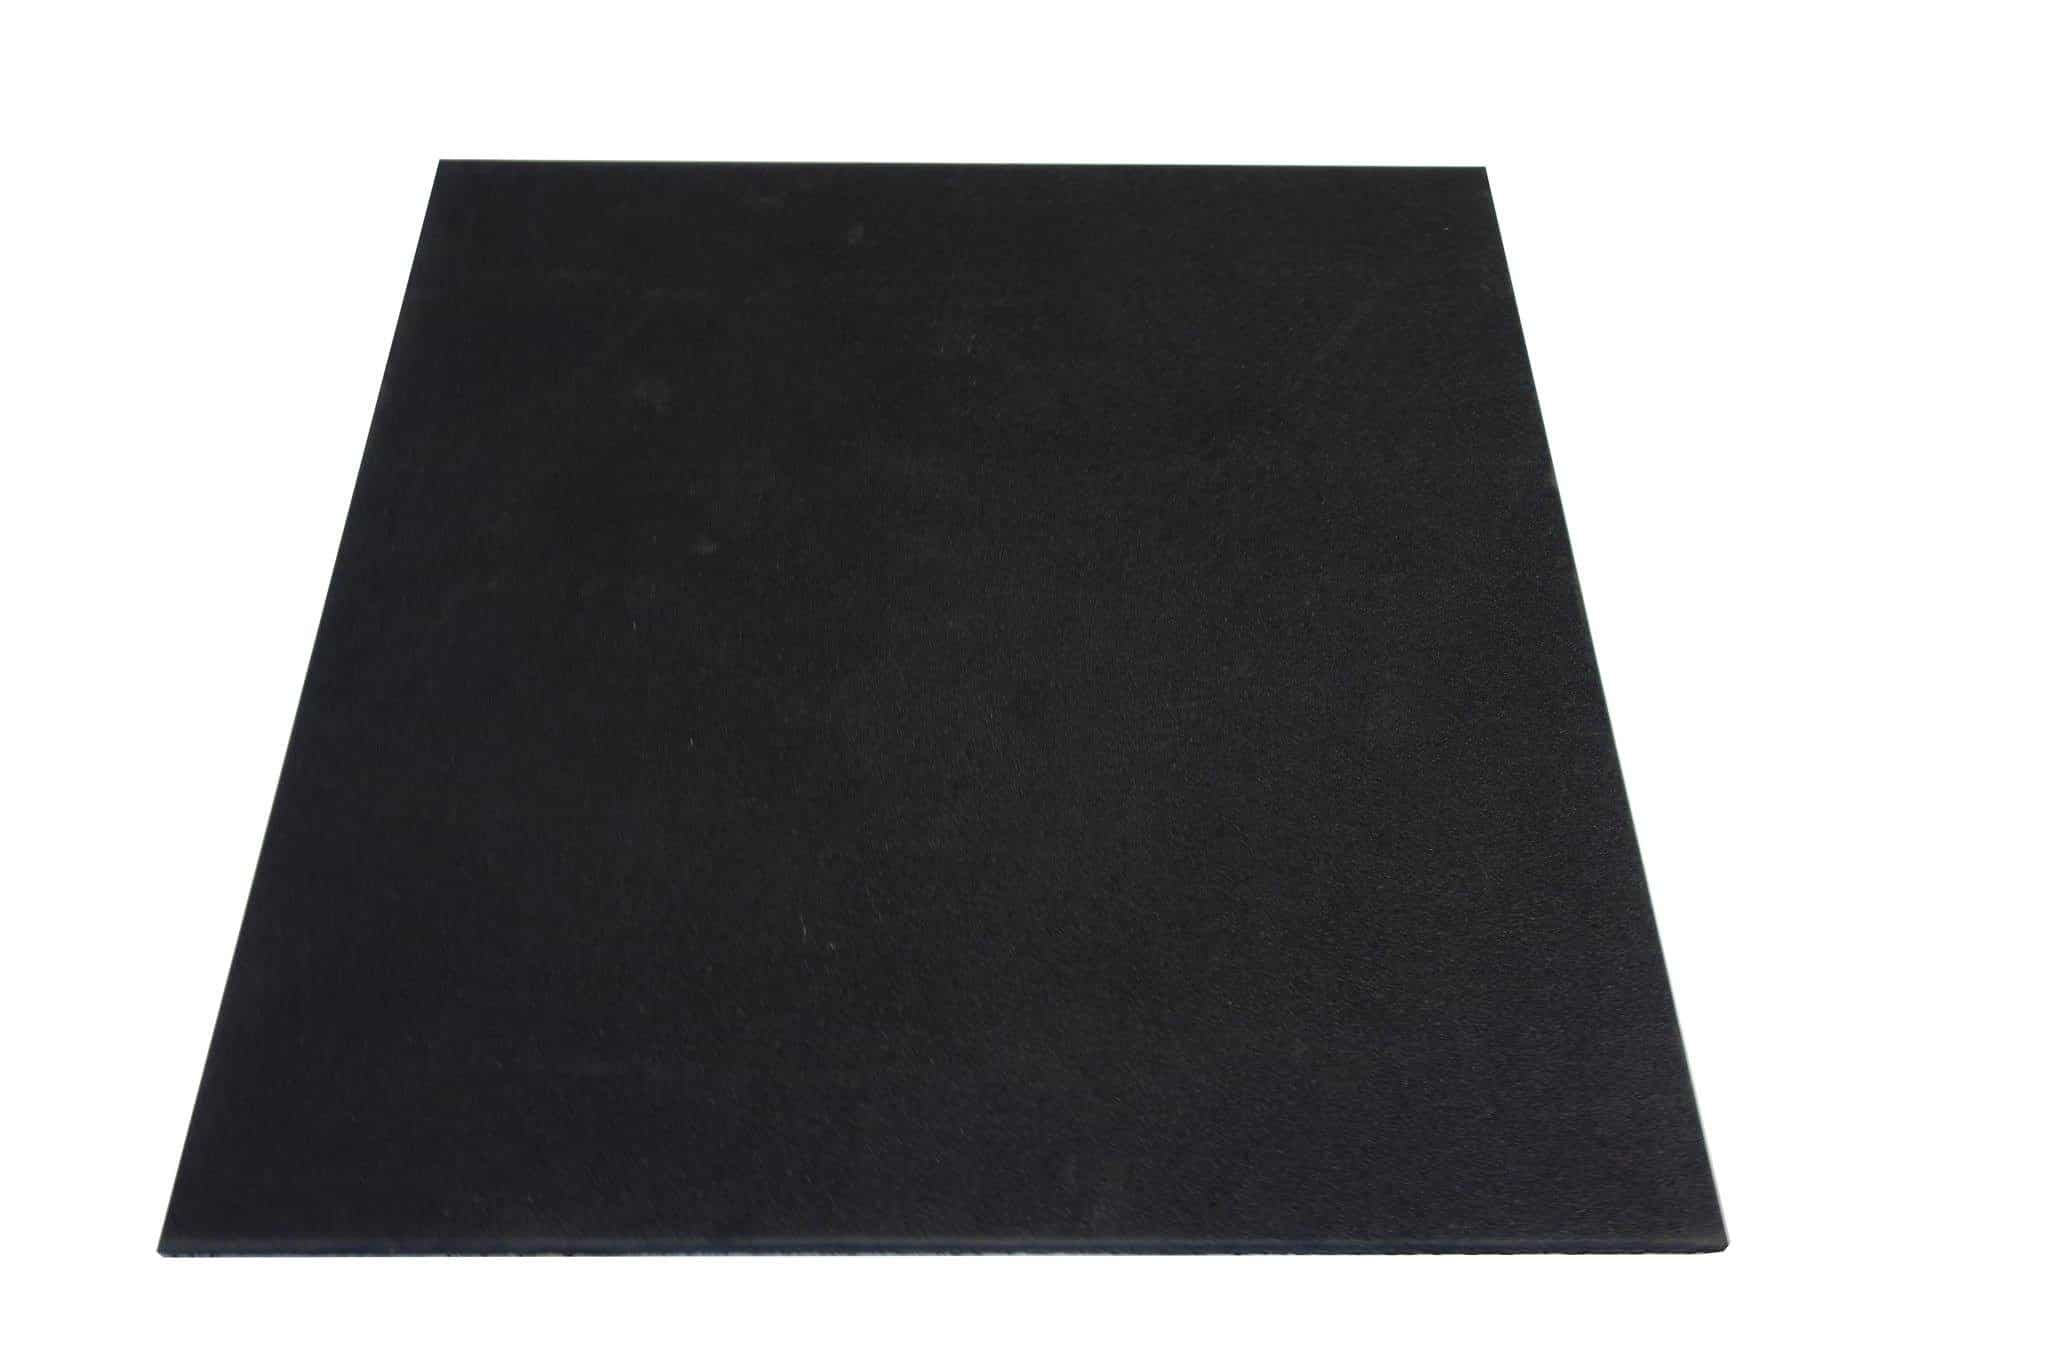 dp amazon mat floor all to canada mercedes season black benz flosdl mats rubber